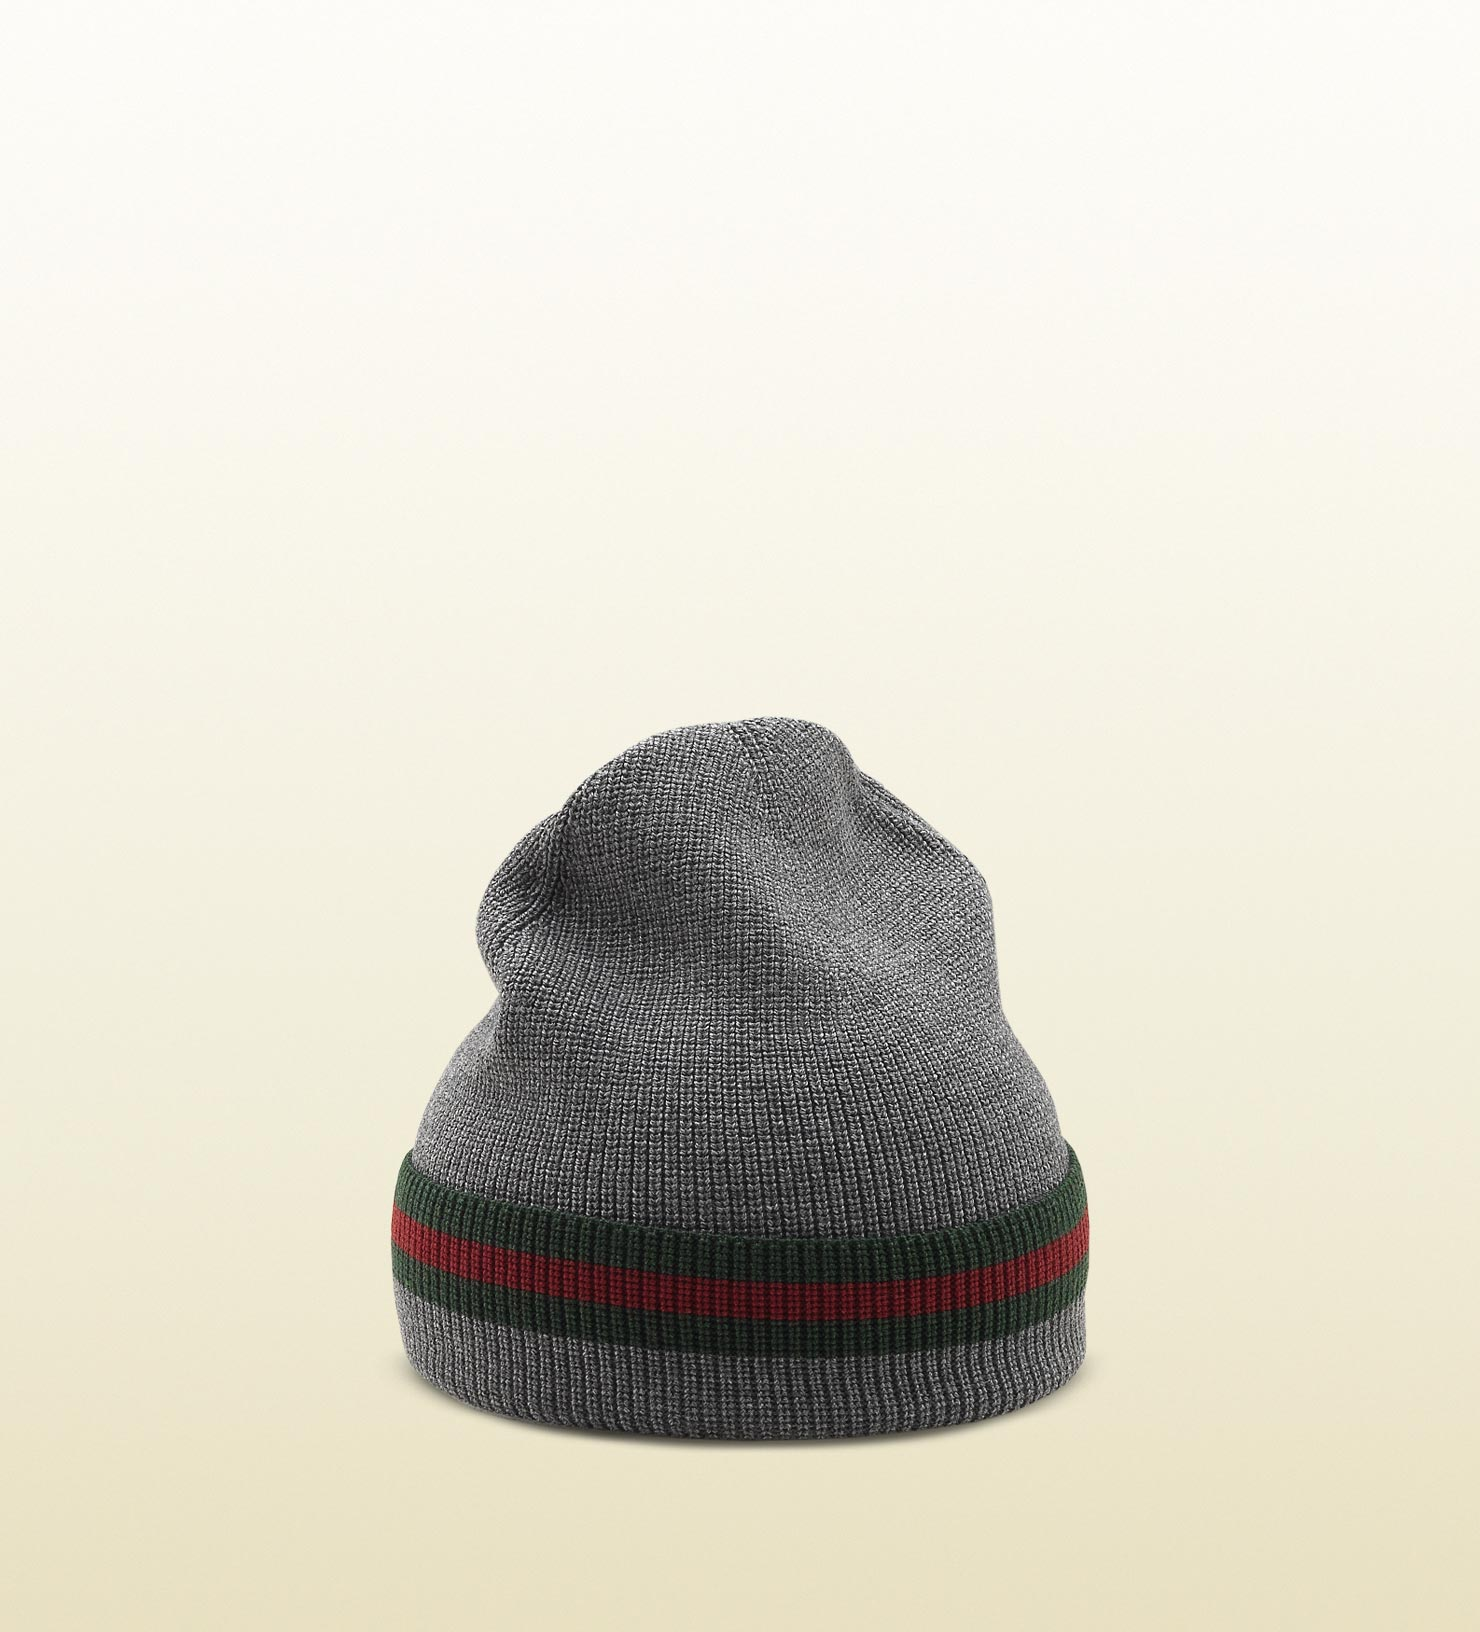 Lyst - Gucci Knit Wool Web Hat in Gray for Men bc075fbd55a